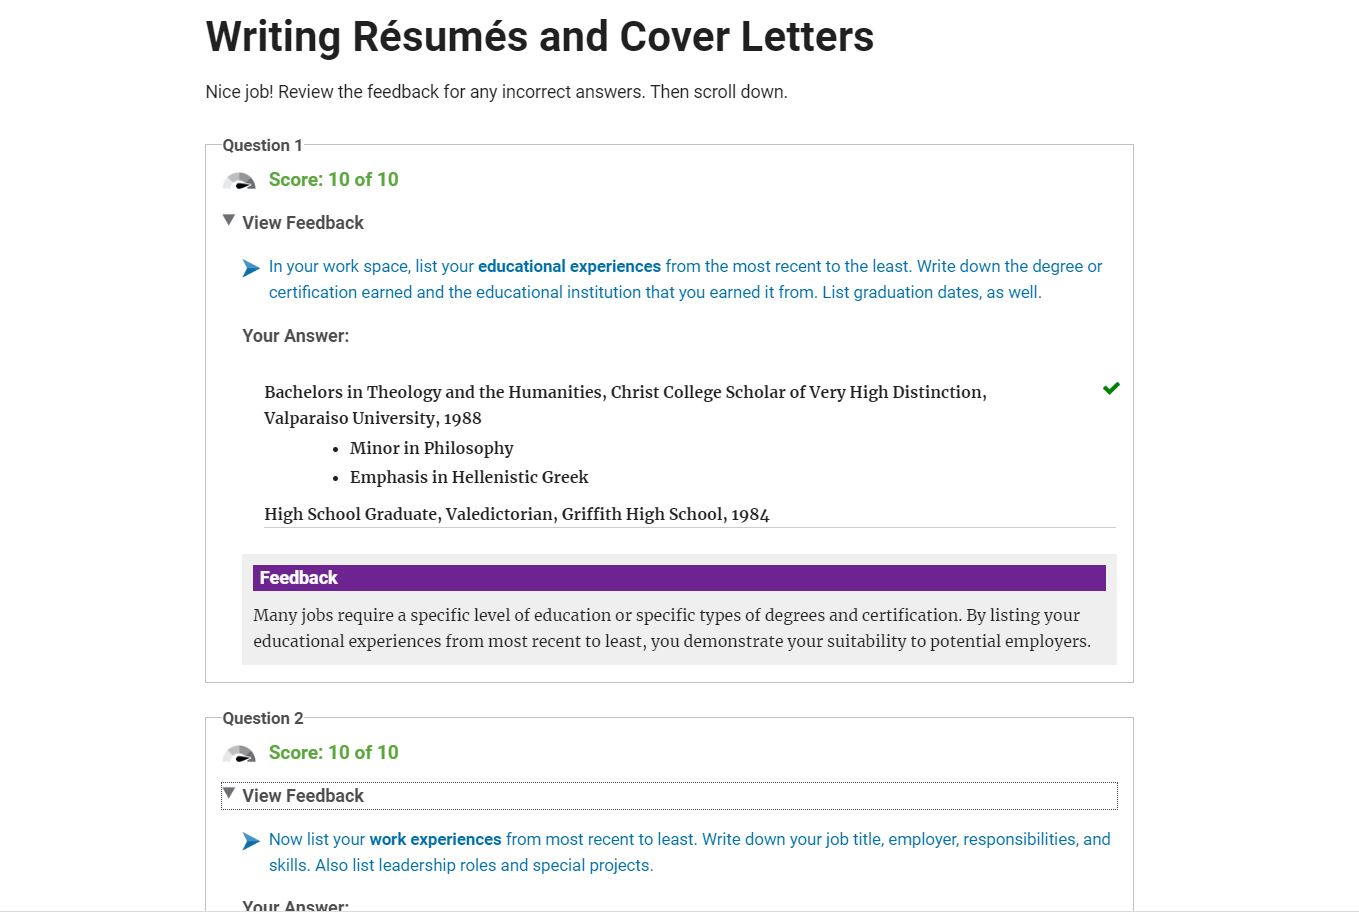 Writing Résumés and Cover Letters - Facilitator License